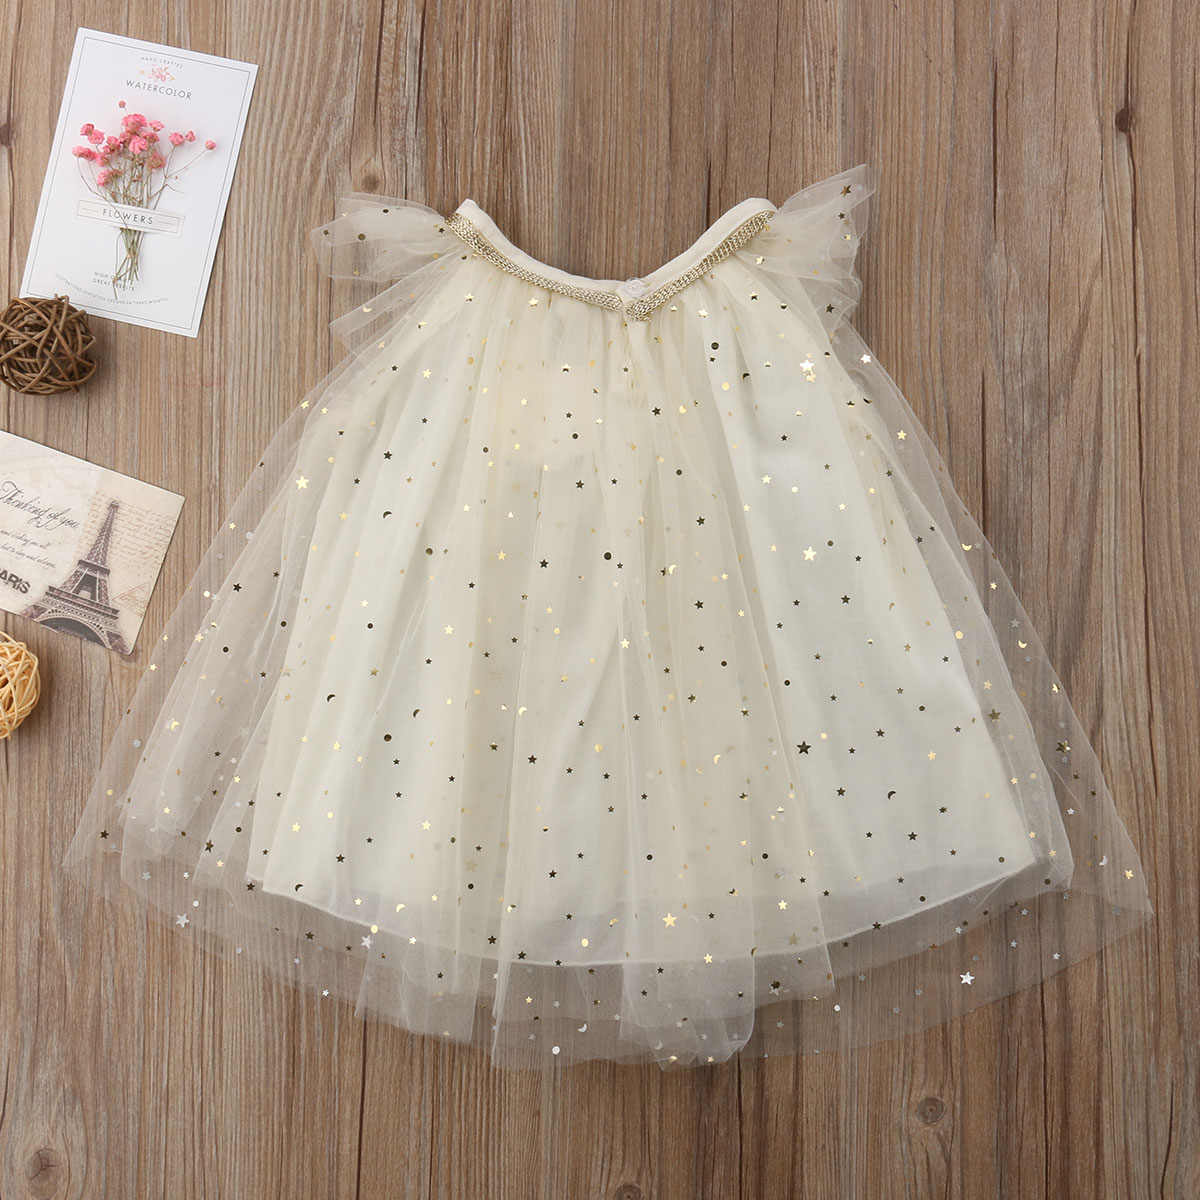 5649cdf91 ... 2019 Emmababy New Flower Girl Princess Dress Pageant Wedding Party  Bridesmaid Kid Gold Dot Tulle Chiffon ...